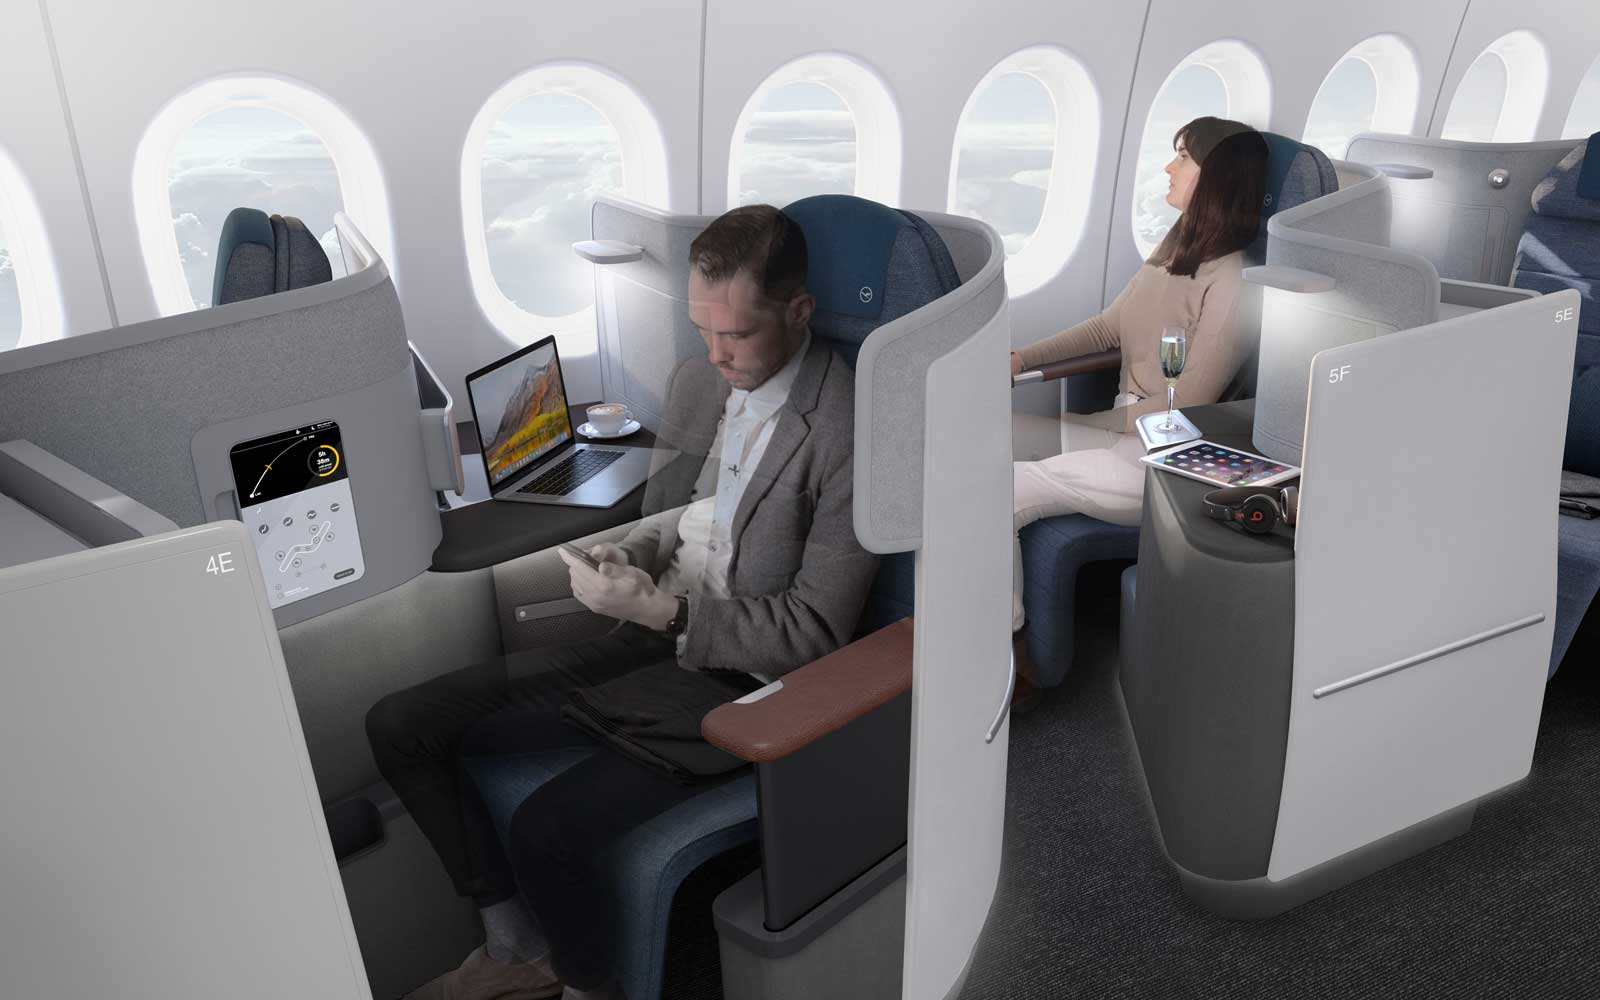 Lufthansa's New Business Class Seat Looks Like a Throne